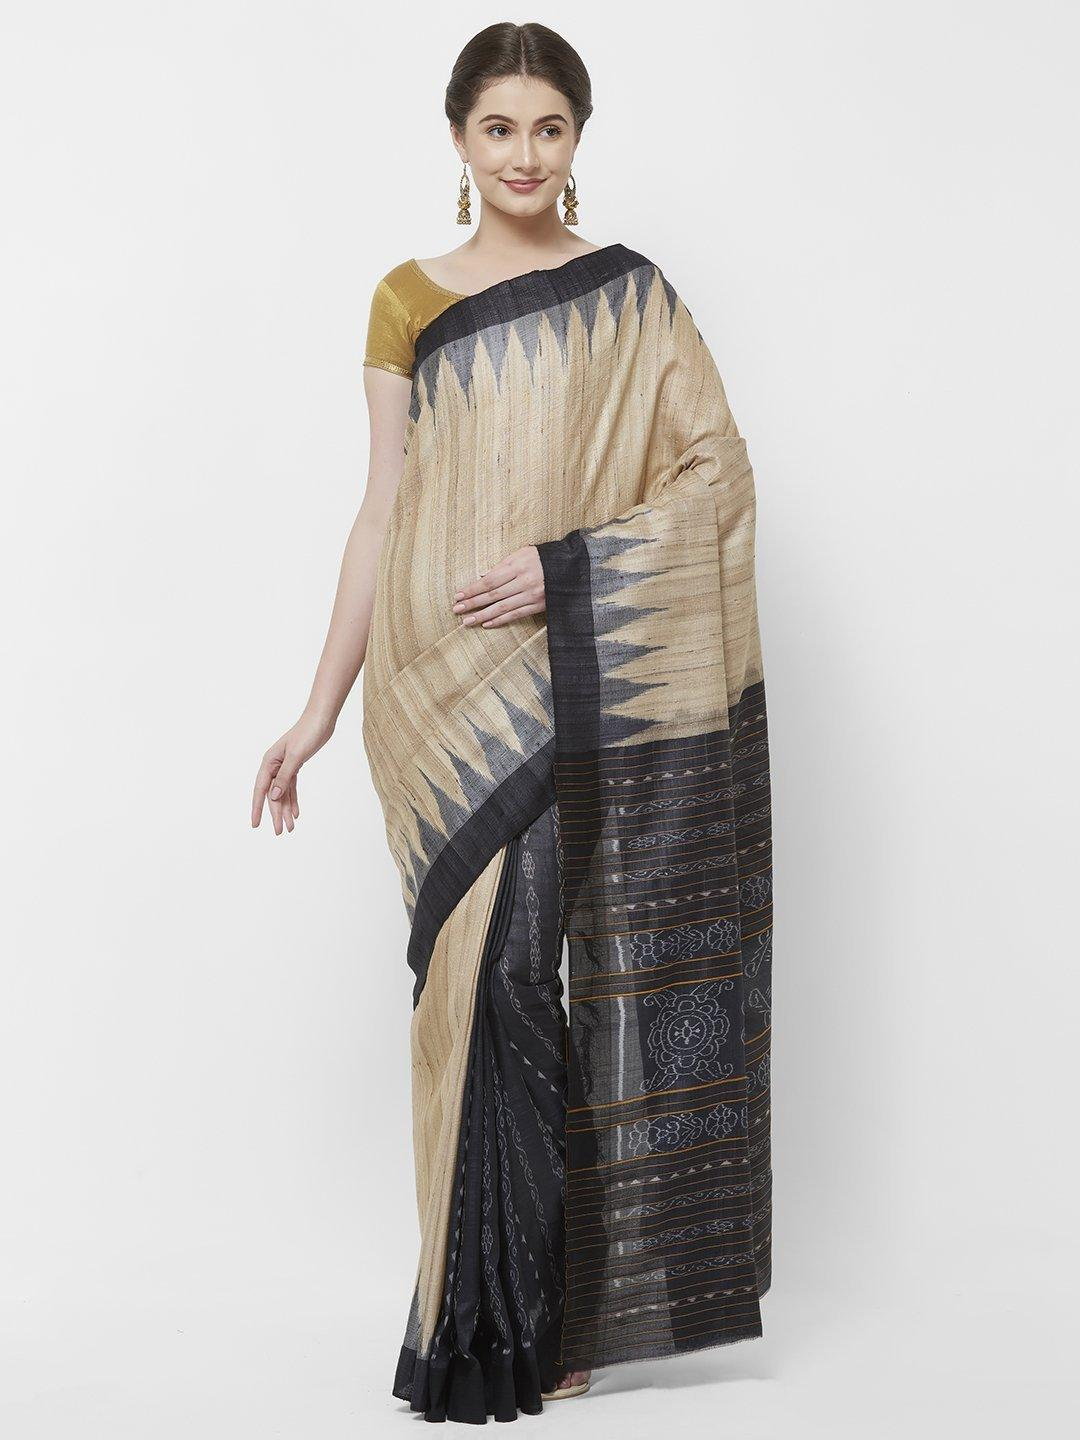 CraftsCollection.in - Beige and Black Patli Tussar Ghicha Silk Sambalpuri Ikat Saree